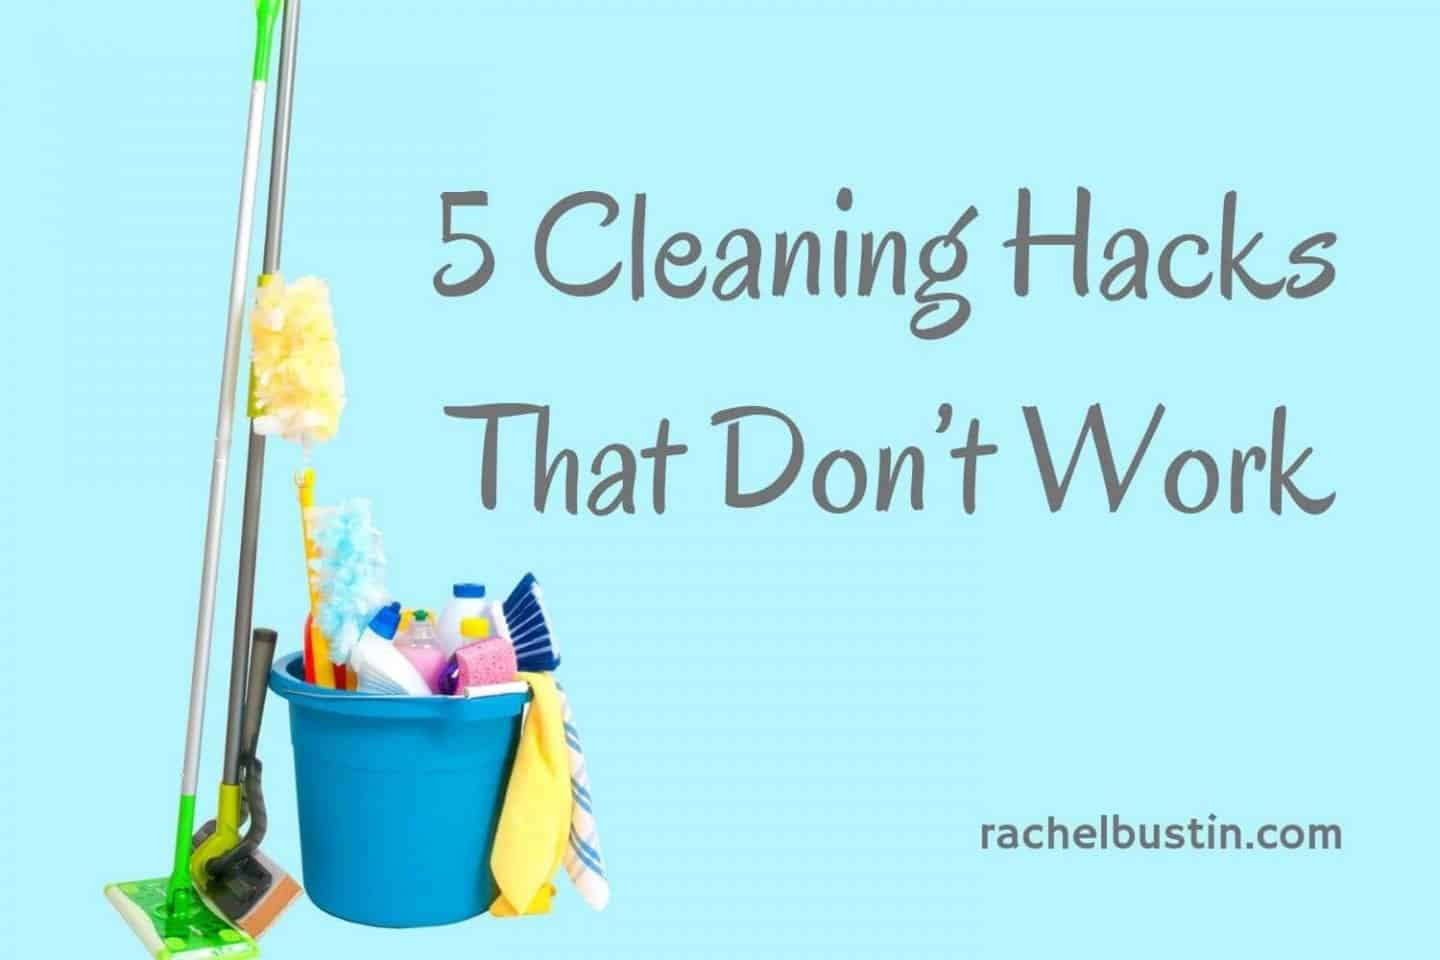 Cleaning Hacks That Don't Work